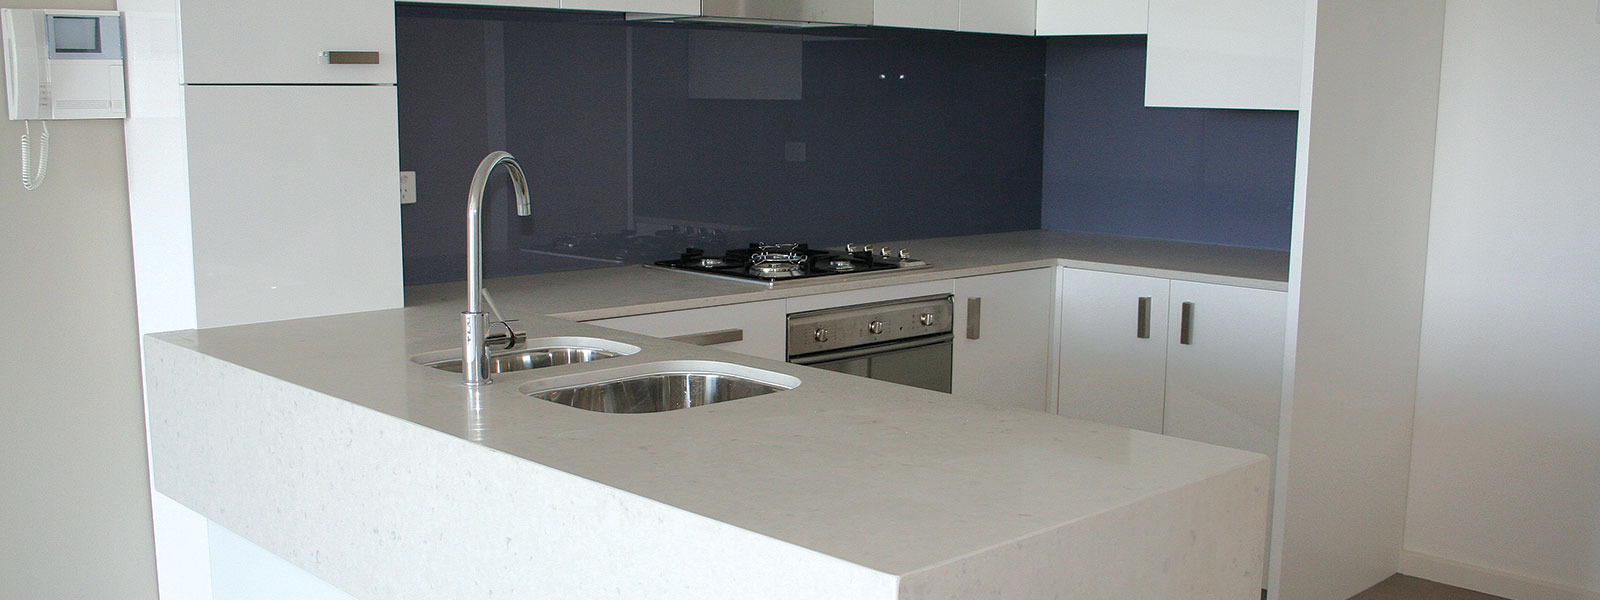 Kitchen Bench Tops Perth Kitchen Benchtops Perth Granite Marble Stone Benchtops